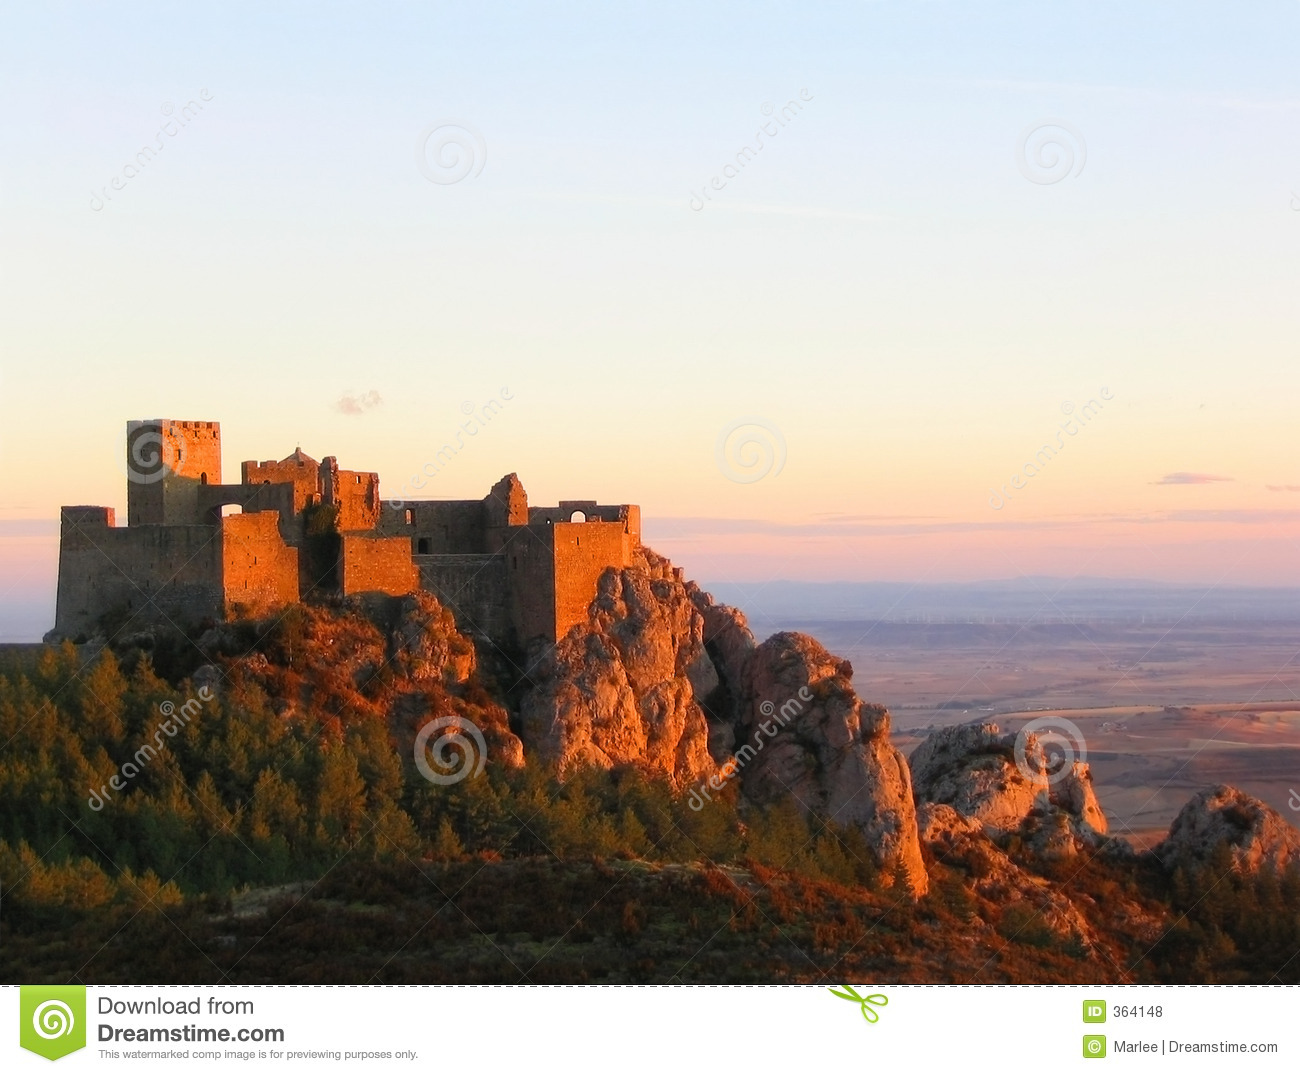 Loarre Castle at sunset